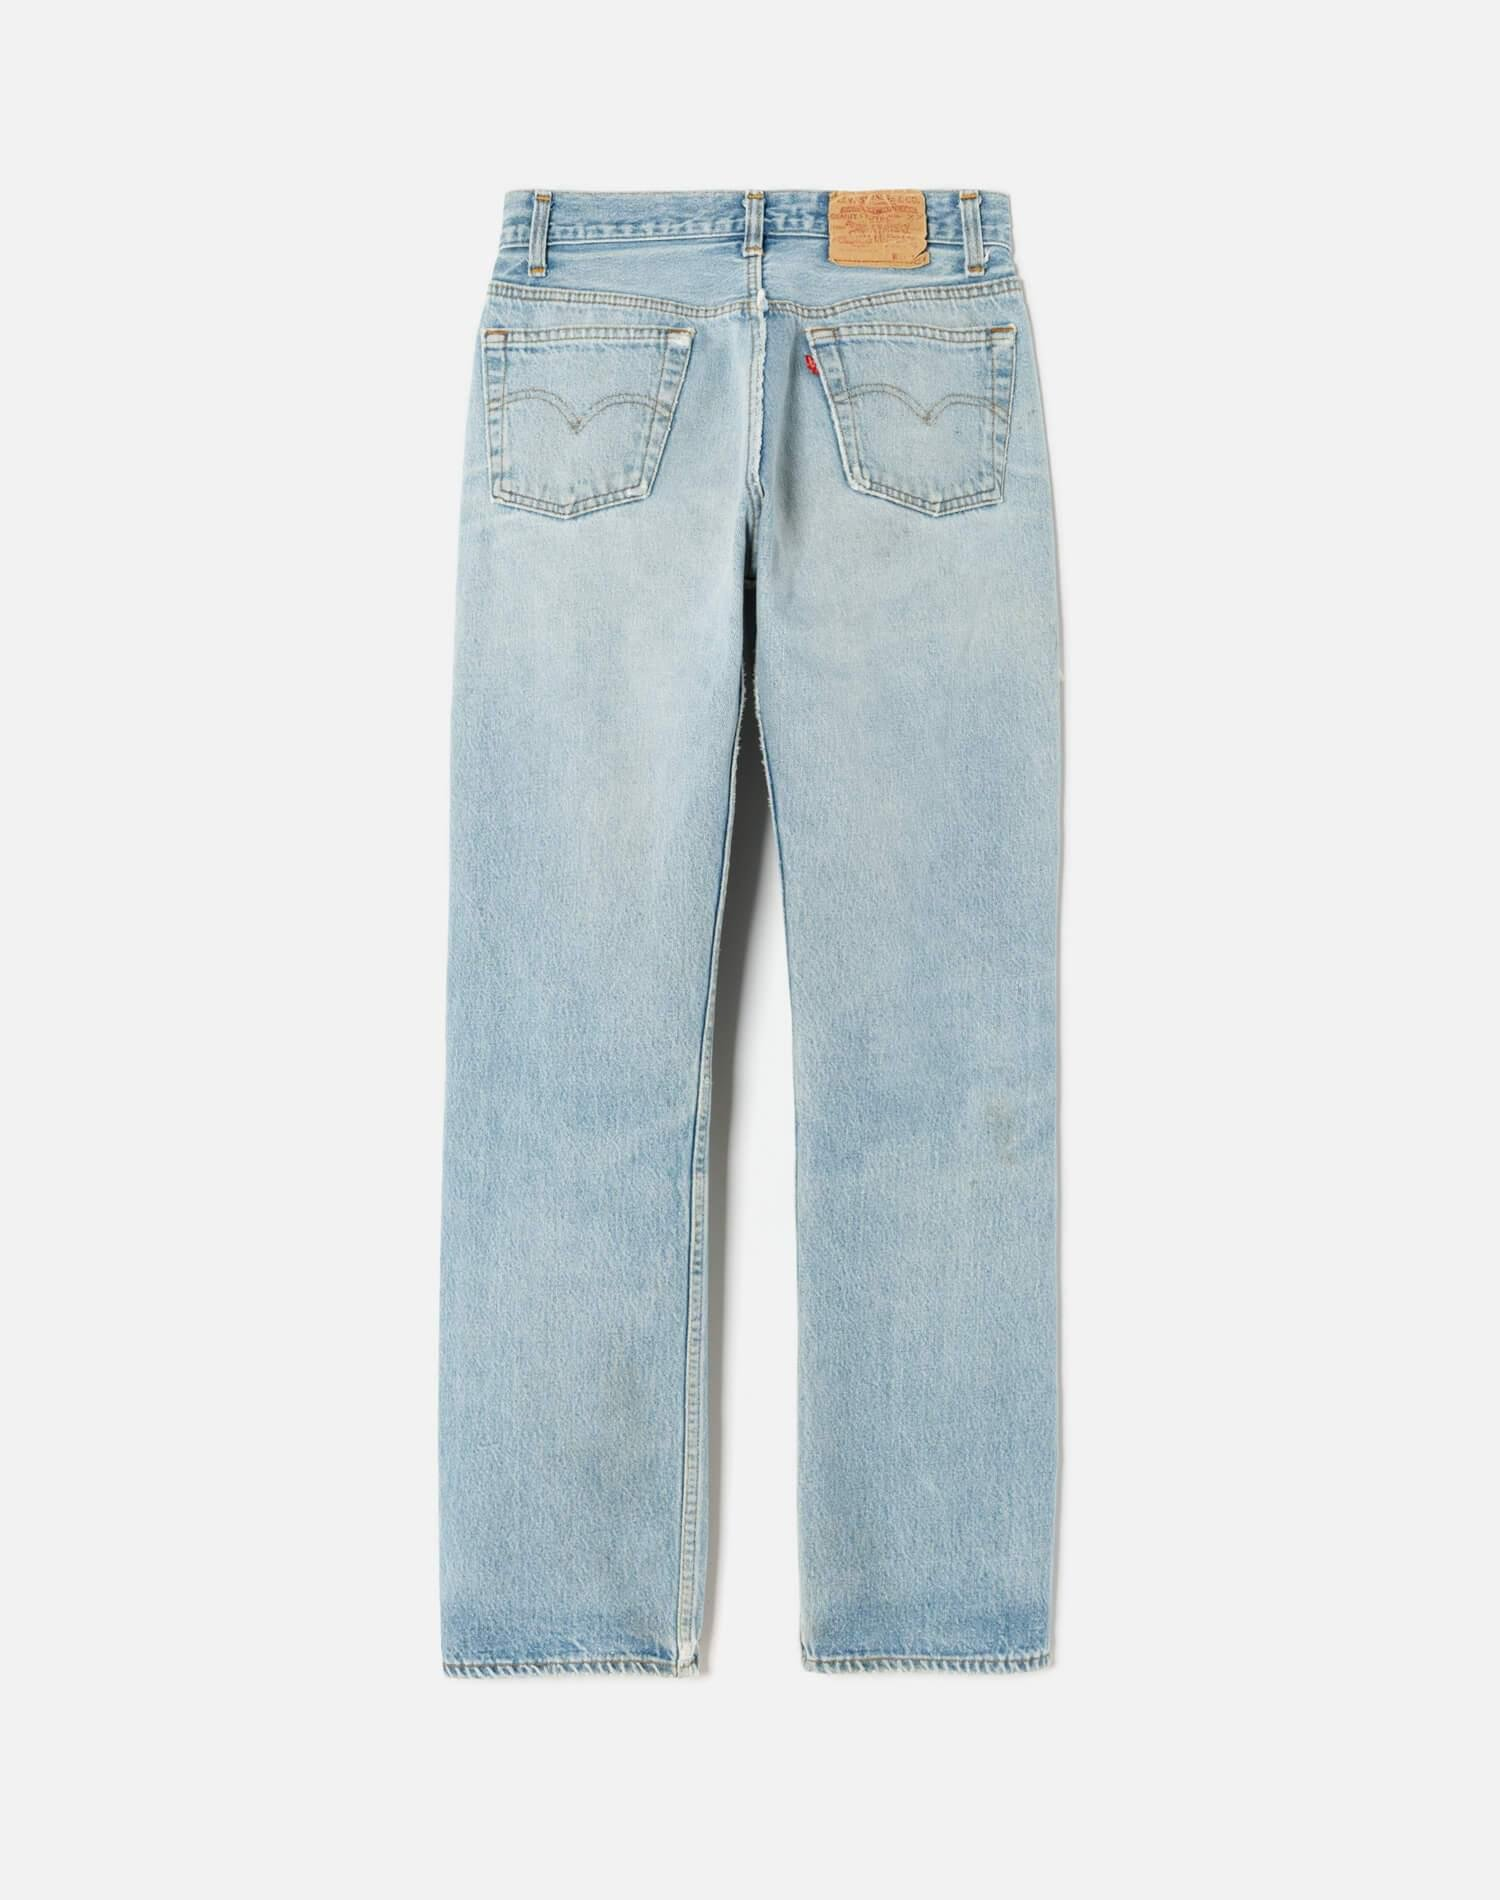 70s/80s Vintage Levi's 501 High Rise Relaxed Straight Leg Size 28 - #251 1